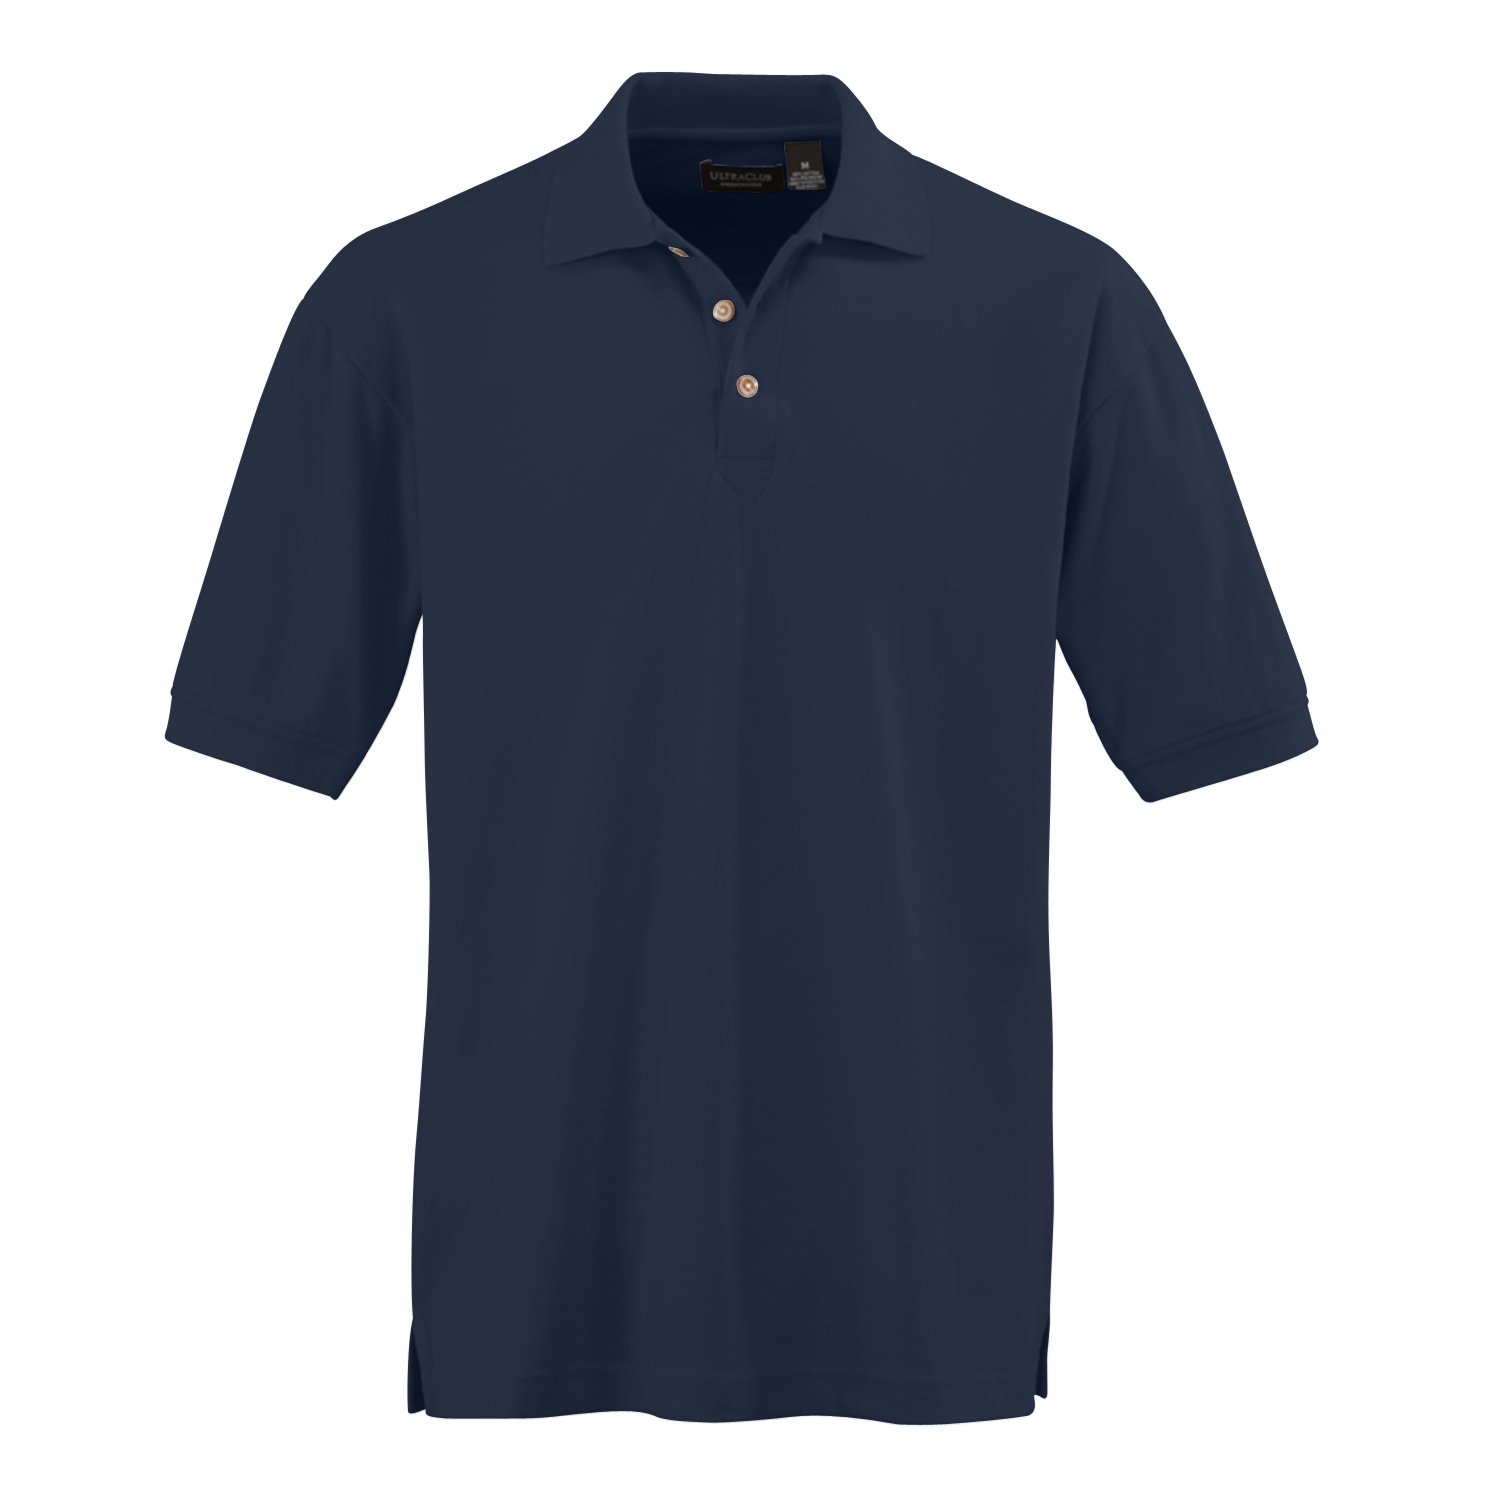 3 Extra Large Ultraclub Mens Whisper Pique Polo Shirts Apple Navy 1 Each